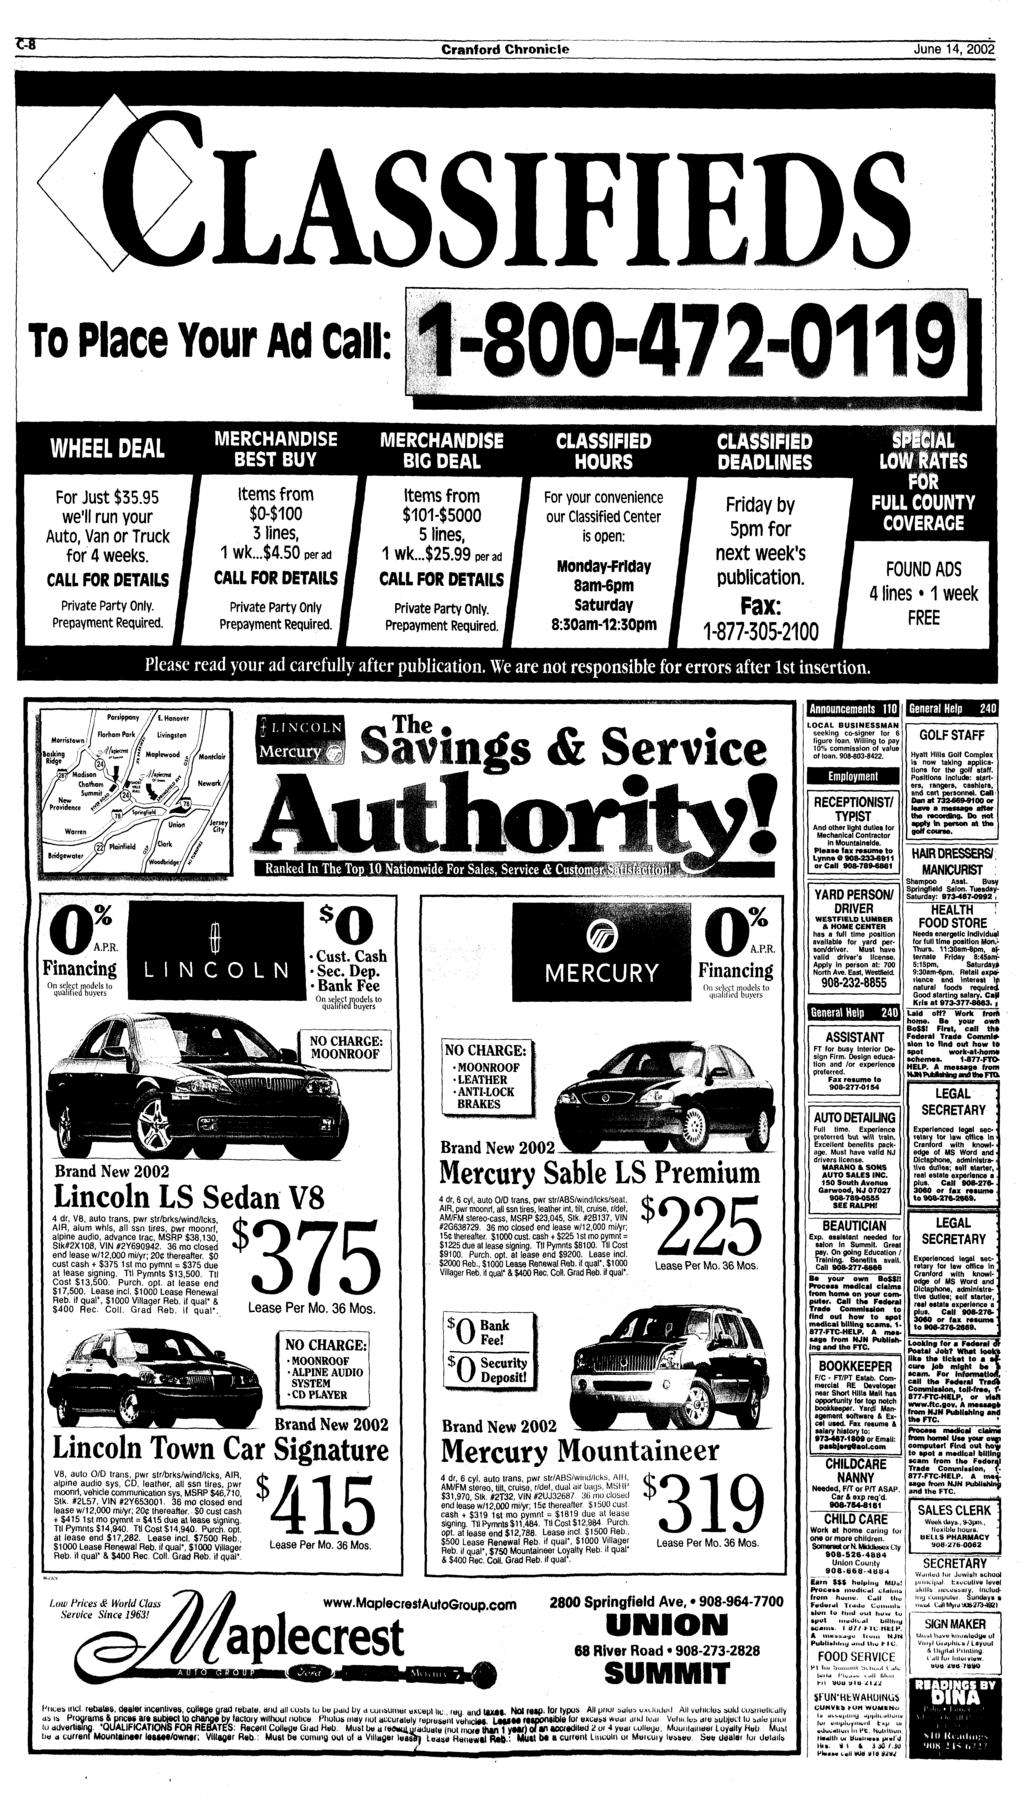 Teen Jailed In Cranford Shooting Woman Holding Toddler Is Shot Air Conditioning Four Season System Vacuum Diagram C K Models For 1979 Gmc Light Duty Truck Series 10 35 Chronicle June 14 2002 Lassifieds To Place Your Ad Call 800472 0119